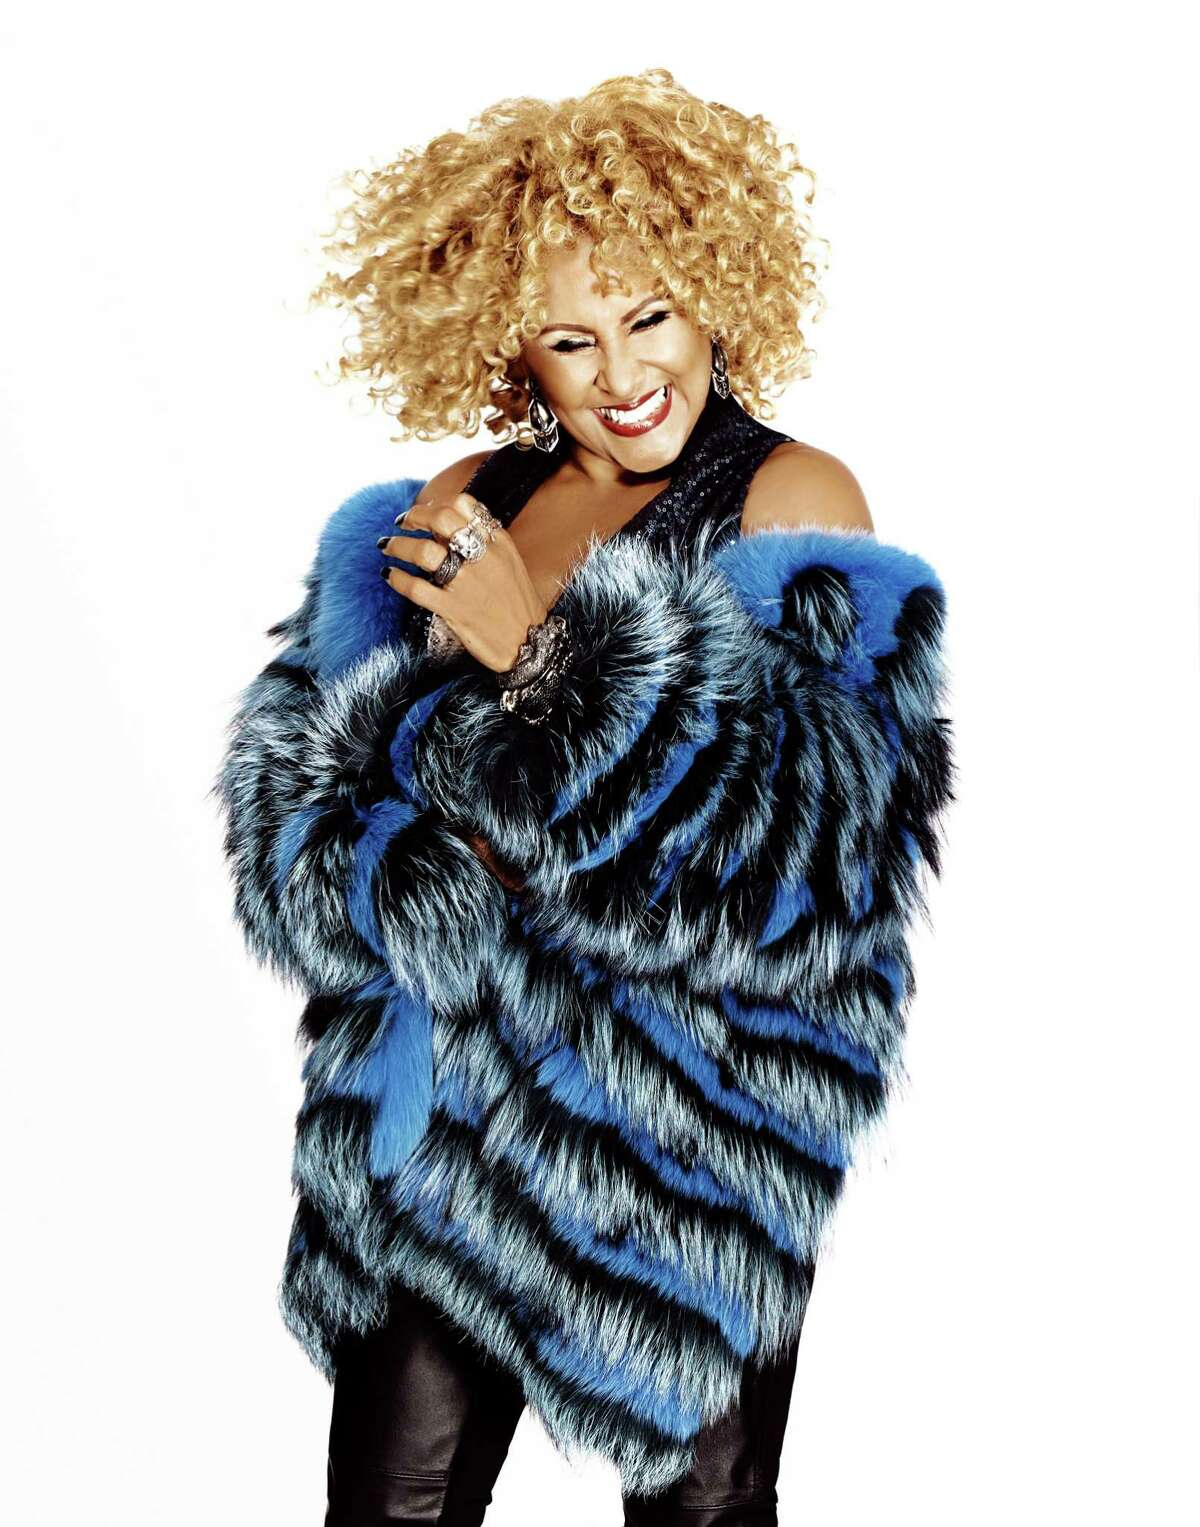 A Darlene Love Christmas will be performed on Dec. 7 at 8 p.m. at the Ridgefield Playhouse, 80 East Ridge Road, Ridgefield. Tickets are $68-$85. For more information, visit ridgefieldplayhouse.org.